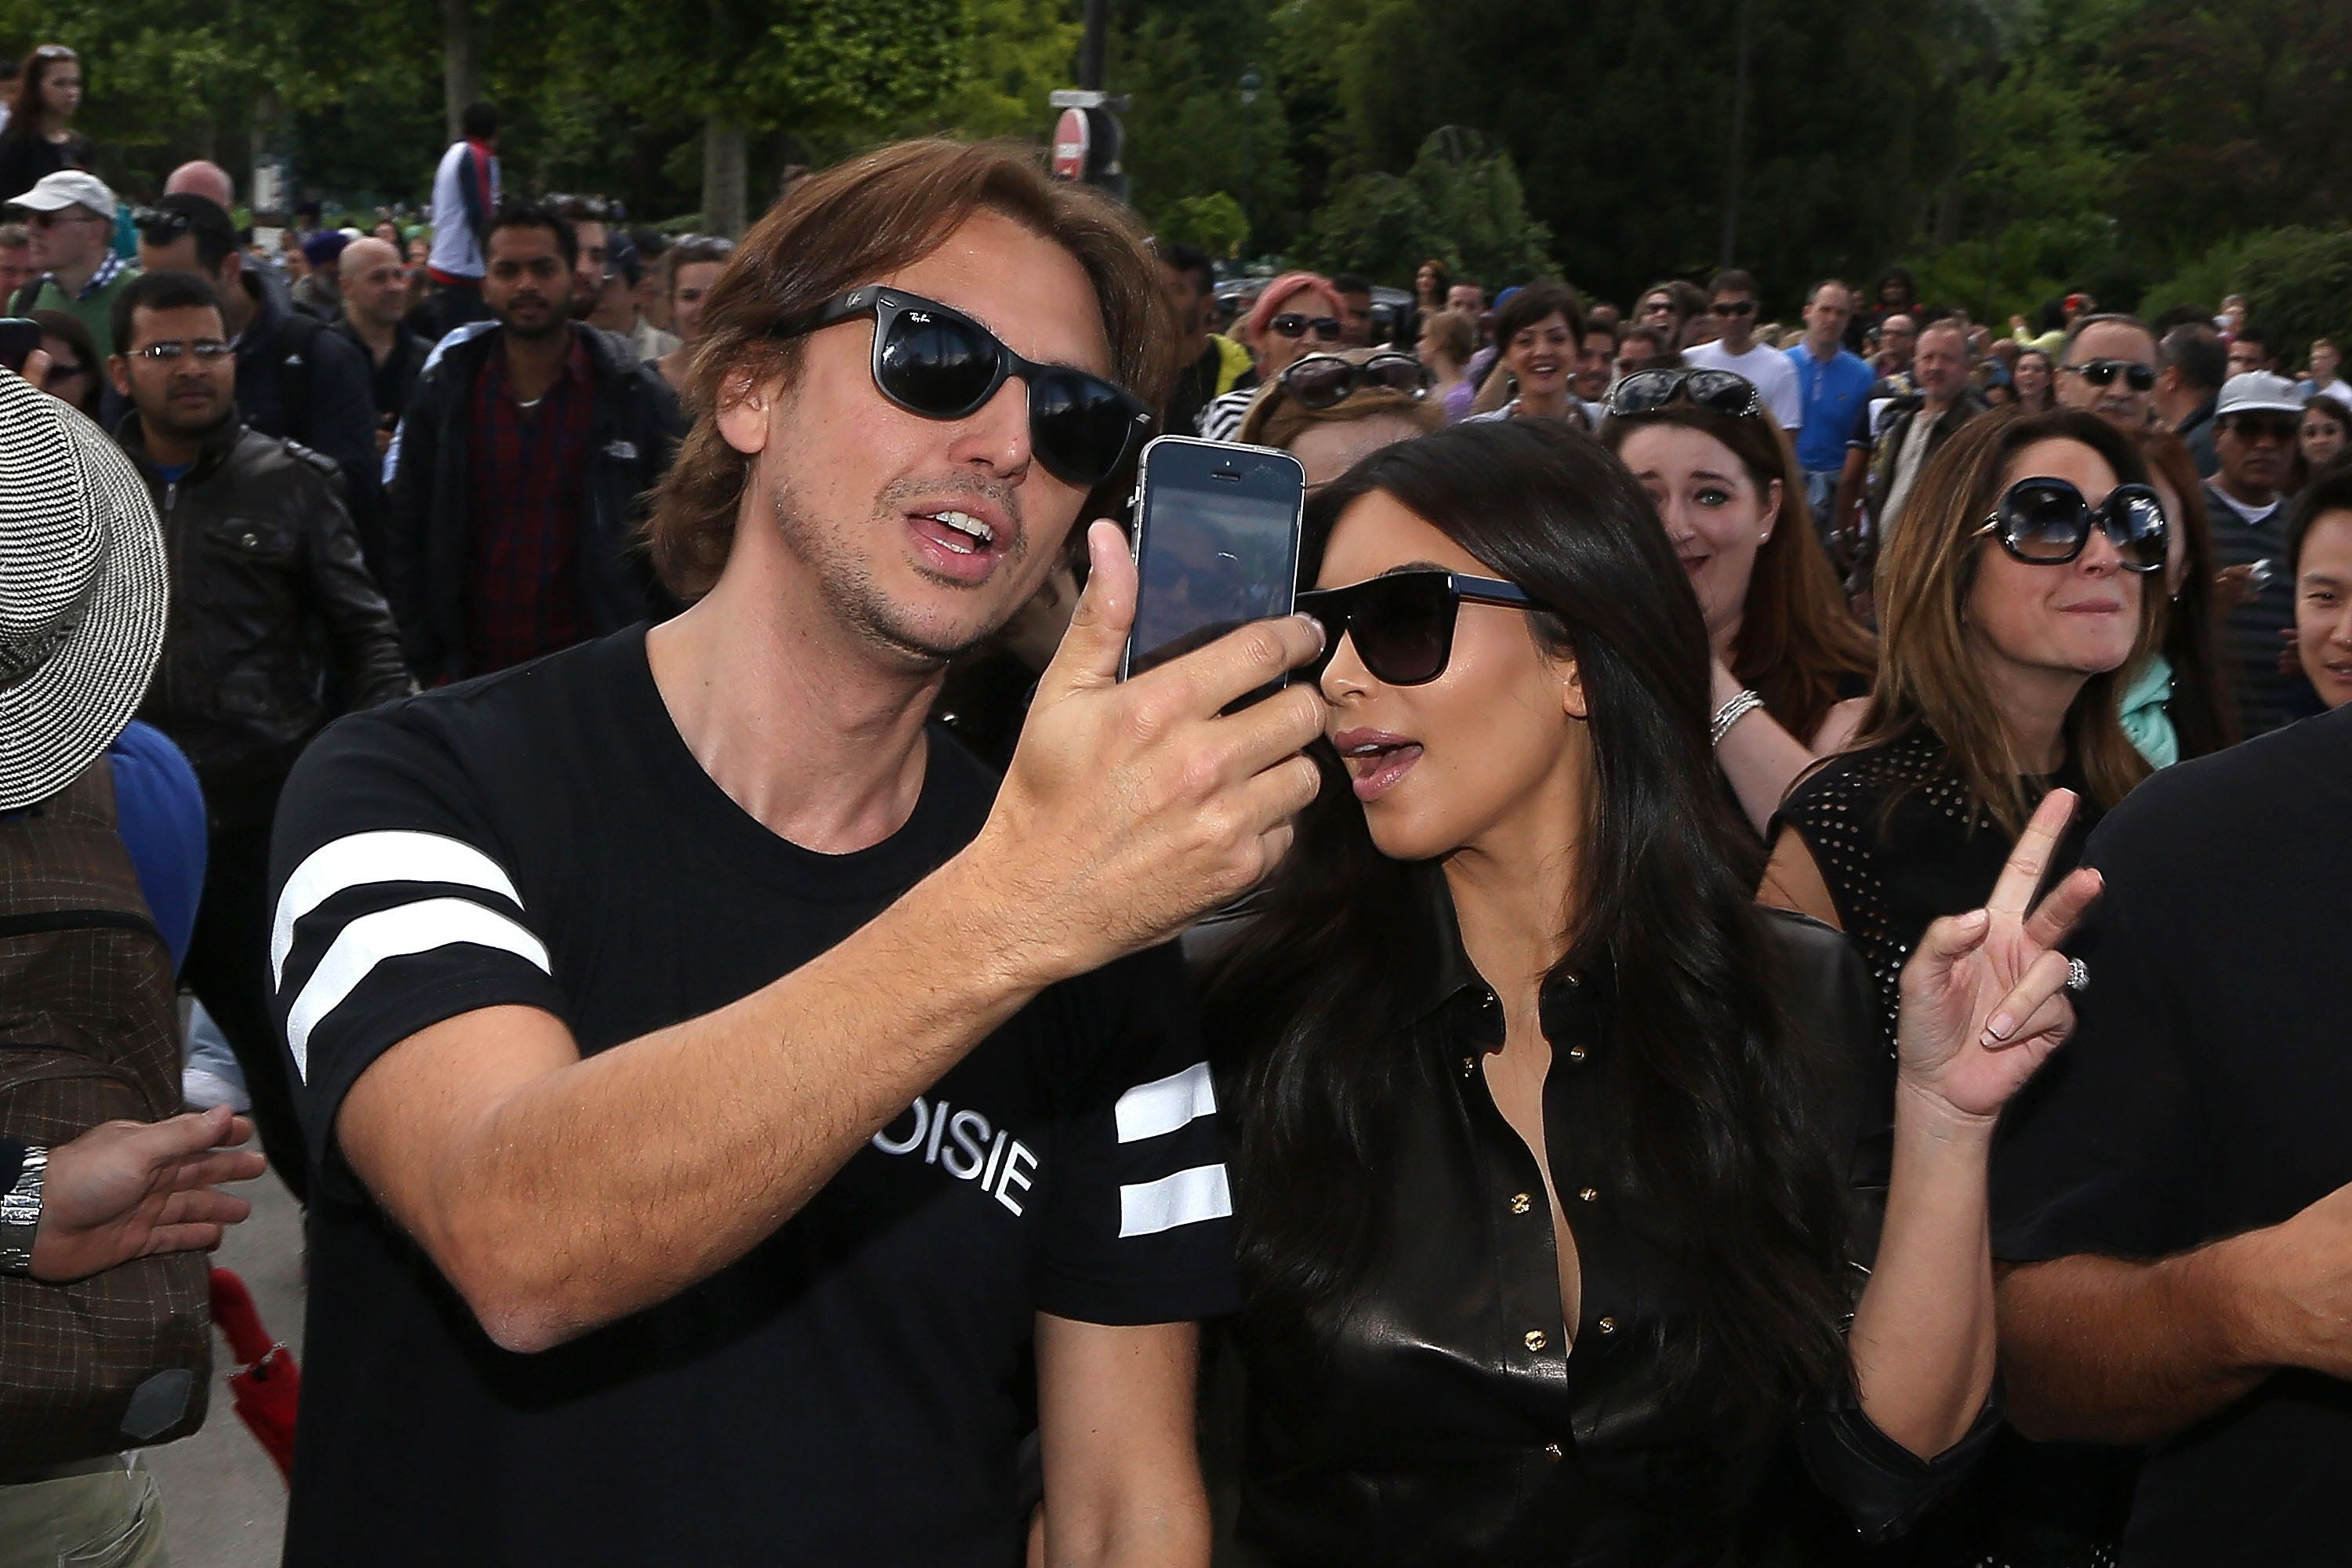 PARIS, FRANCE - MAY 22:  Kim Kardashian and Jonathan Cheban arrive at the Eiffel tower on May 22, 2014 in Paris, France.  (Photo by Marc Piasecki/GC Images)